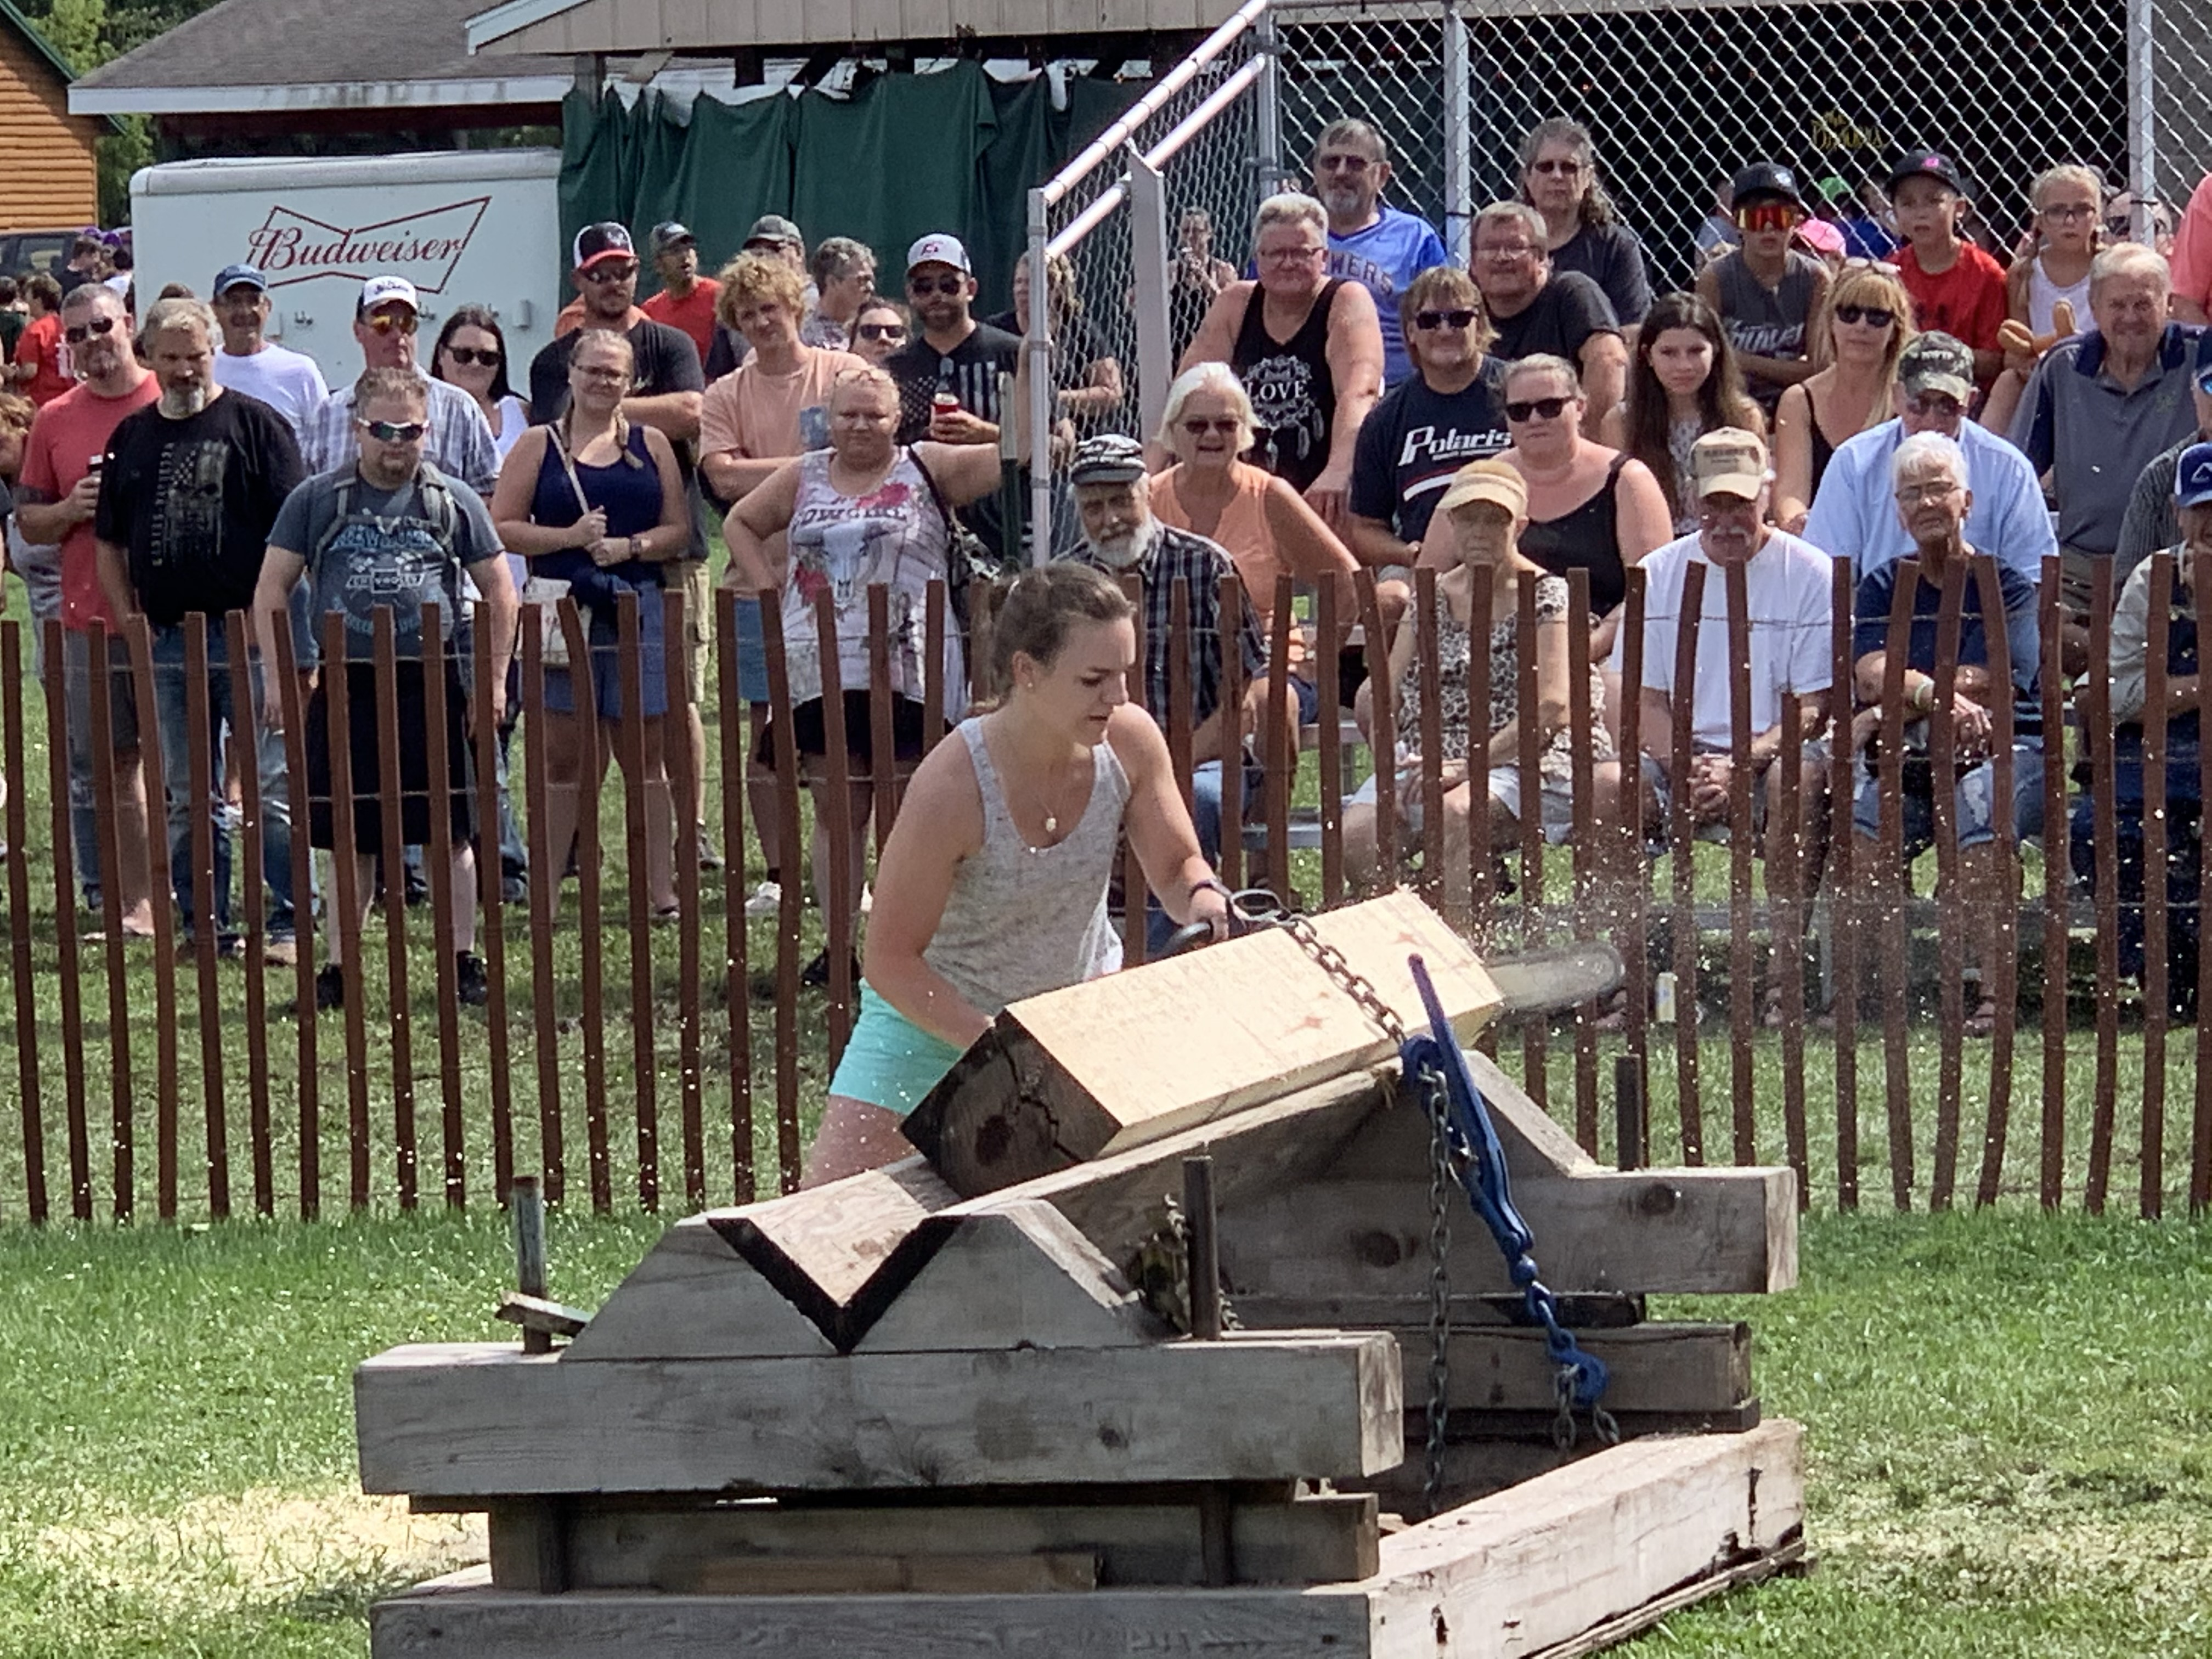 Dozens of spectators watch as Alison Stewart saws wood with a chainsaw during the Aug. 29 lumberjack competition at Legion Park.Luke Reimer | NEW Media